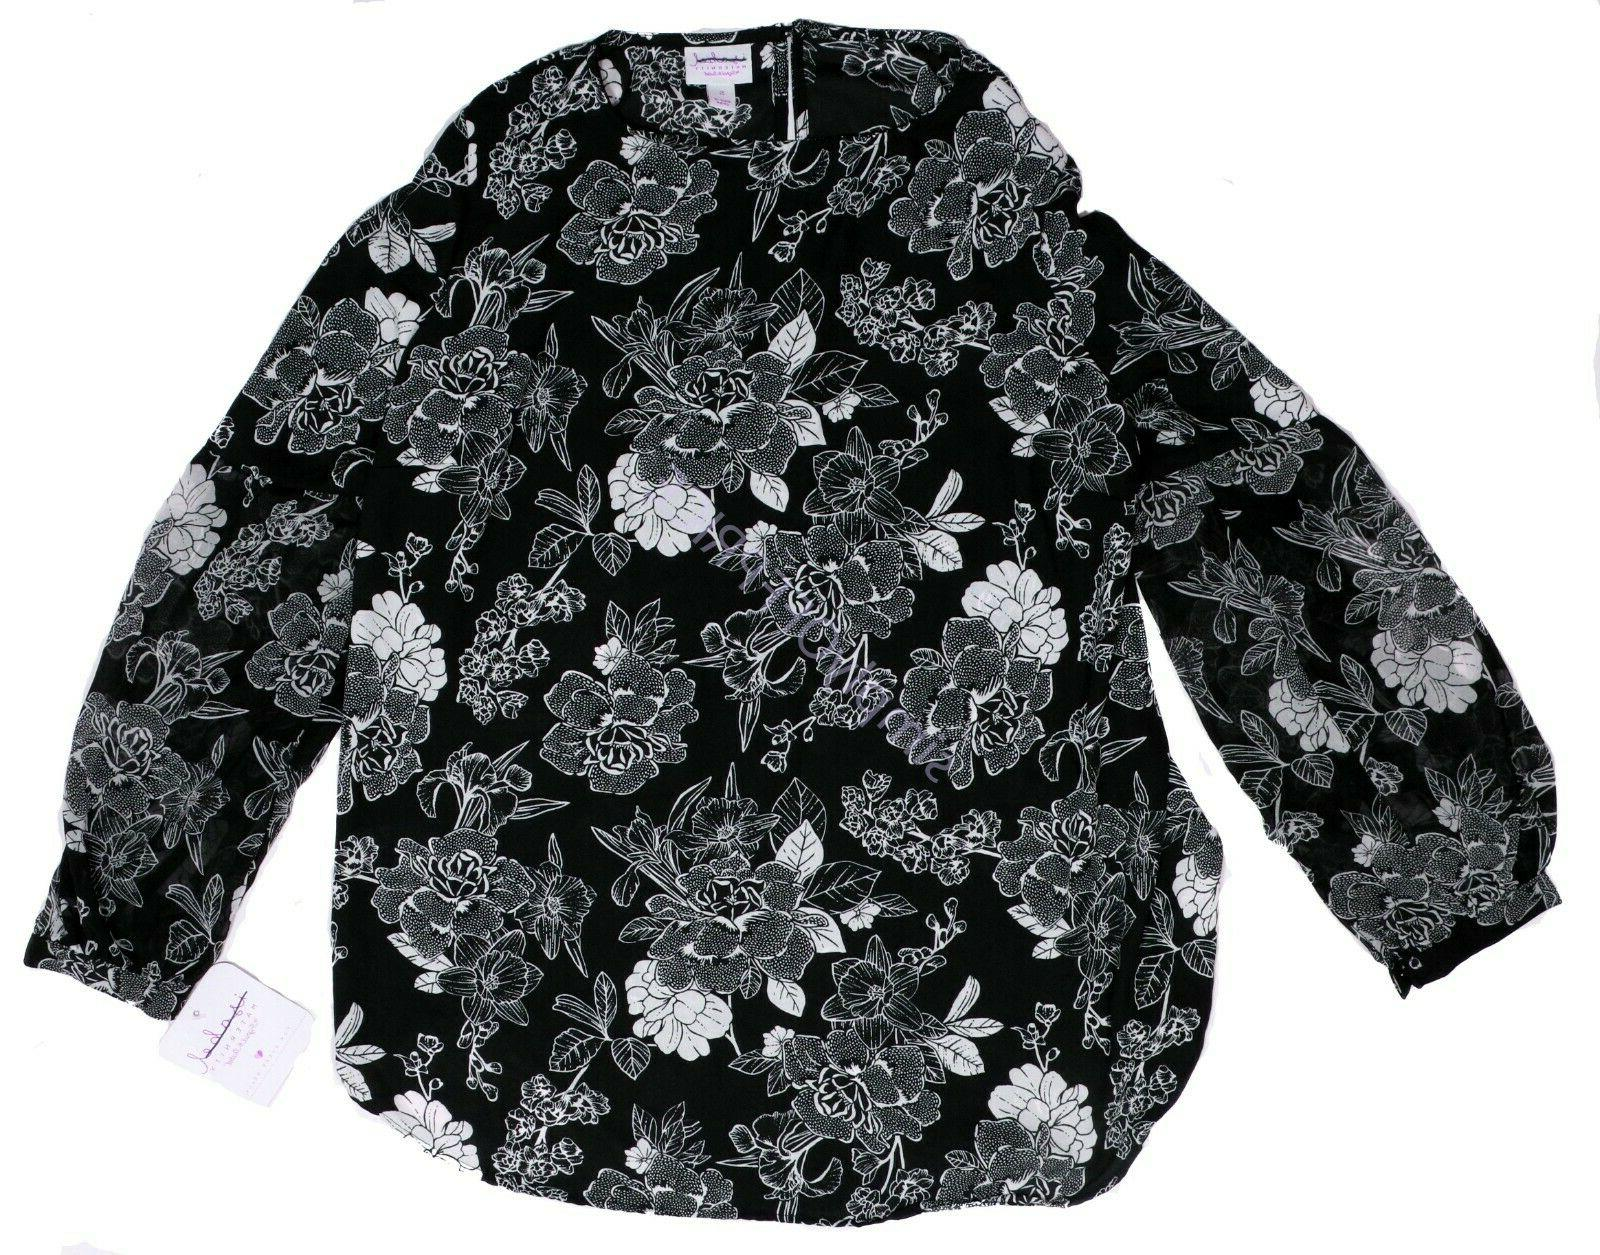 nwt womens maternity clothes black floral print